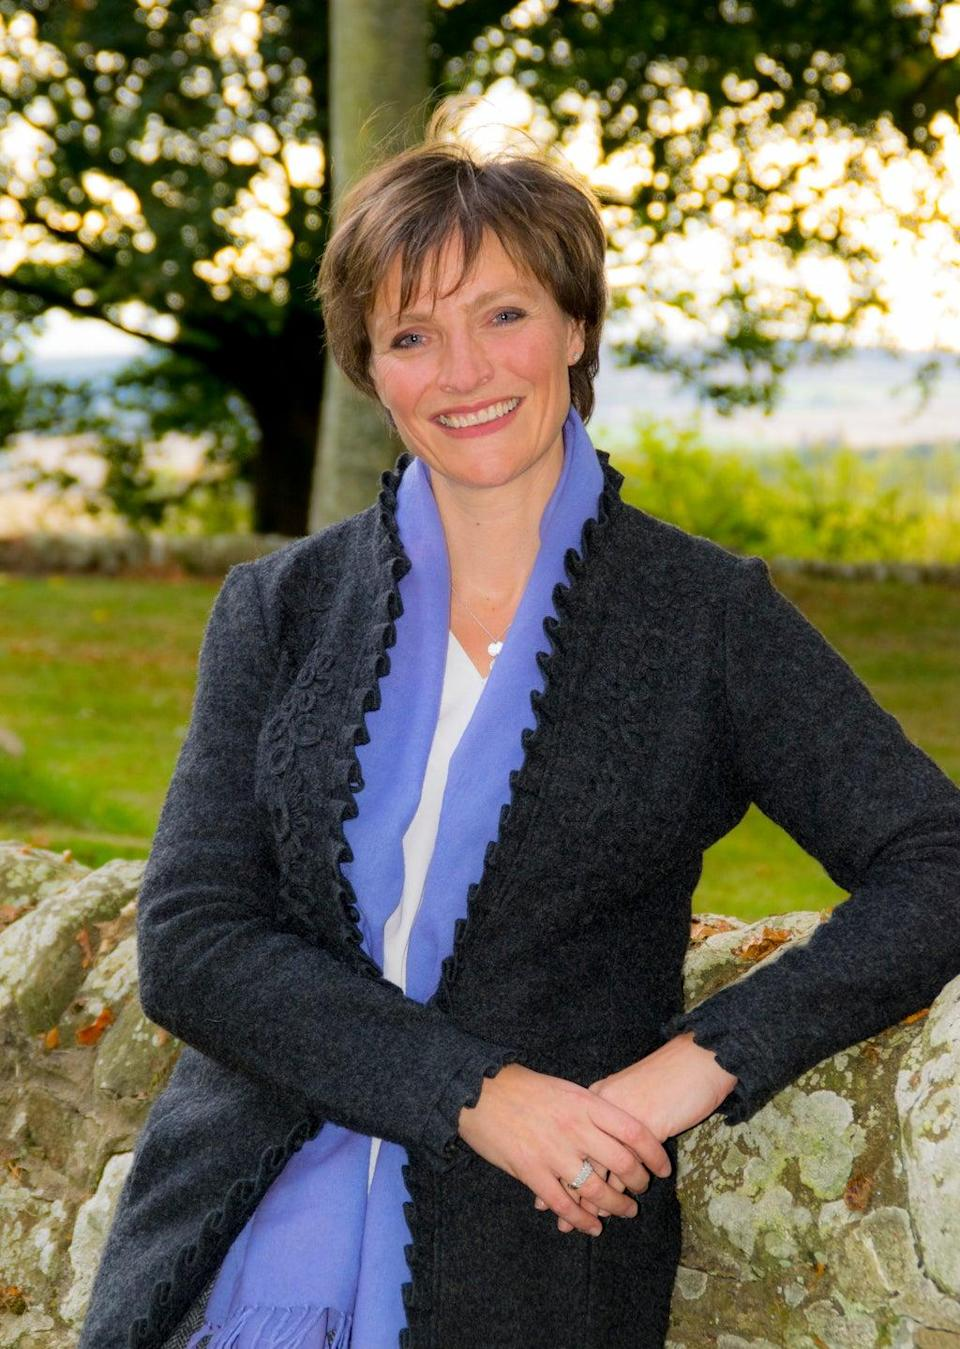 Gordonstoun's current principal, Lisa Kerr, has apologised for the historic abuse which took place at the school (PA) (PA Media)